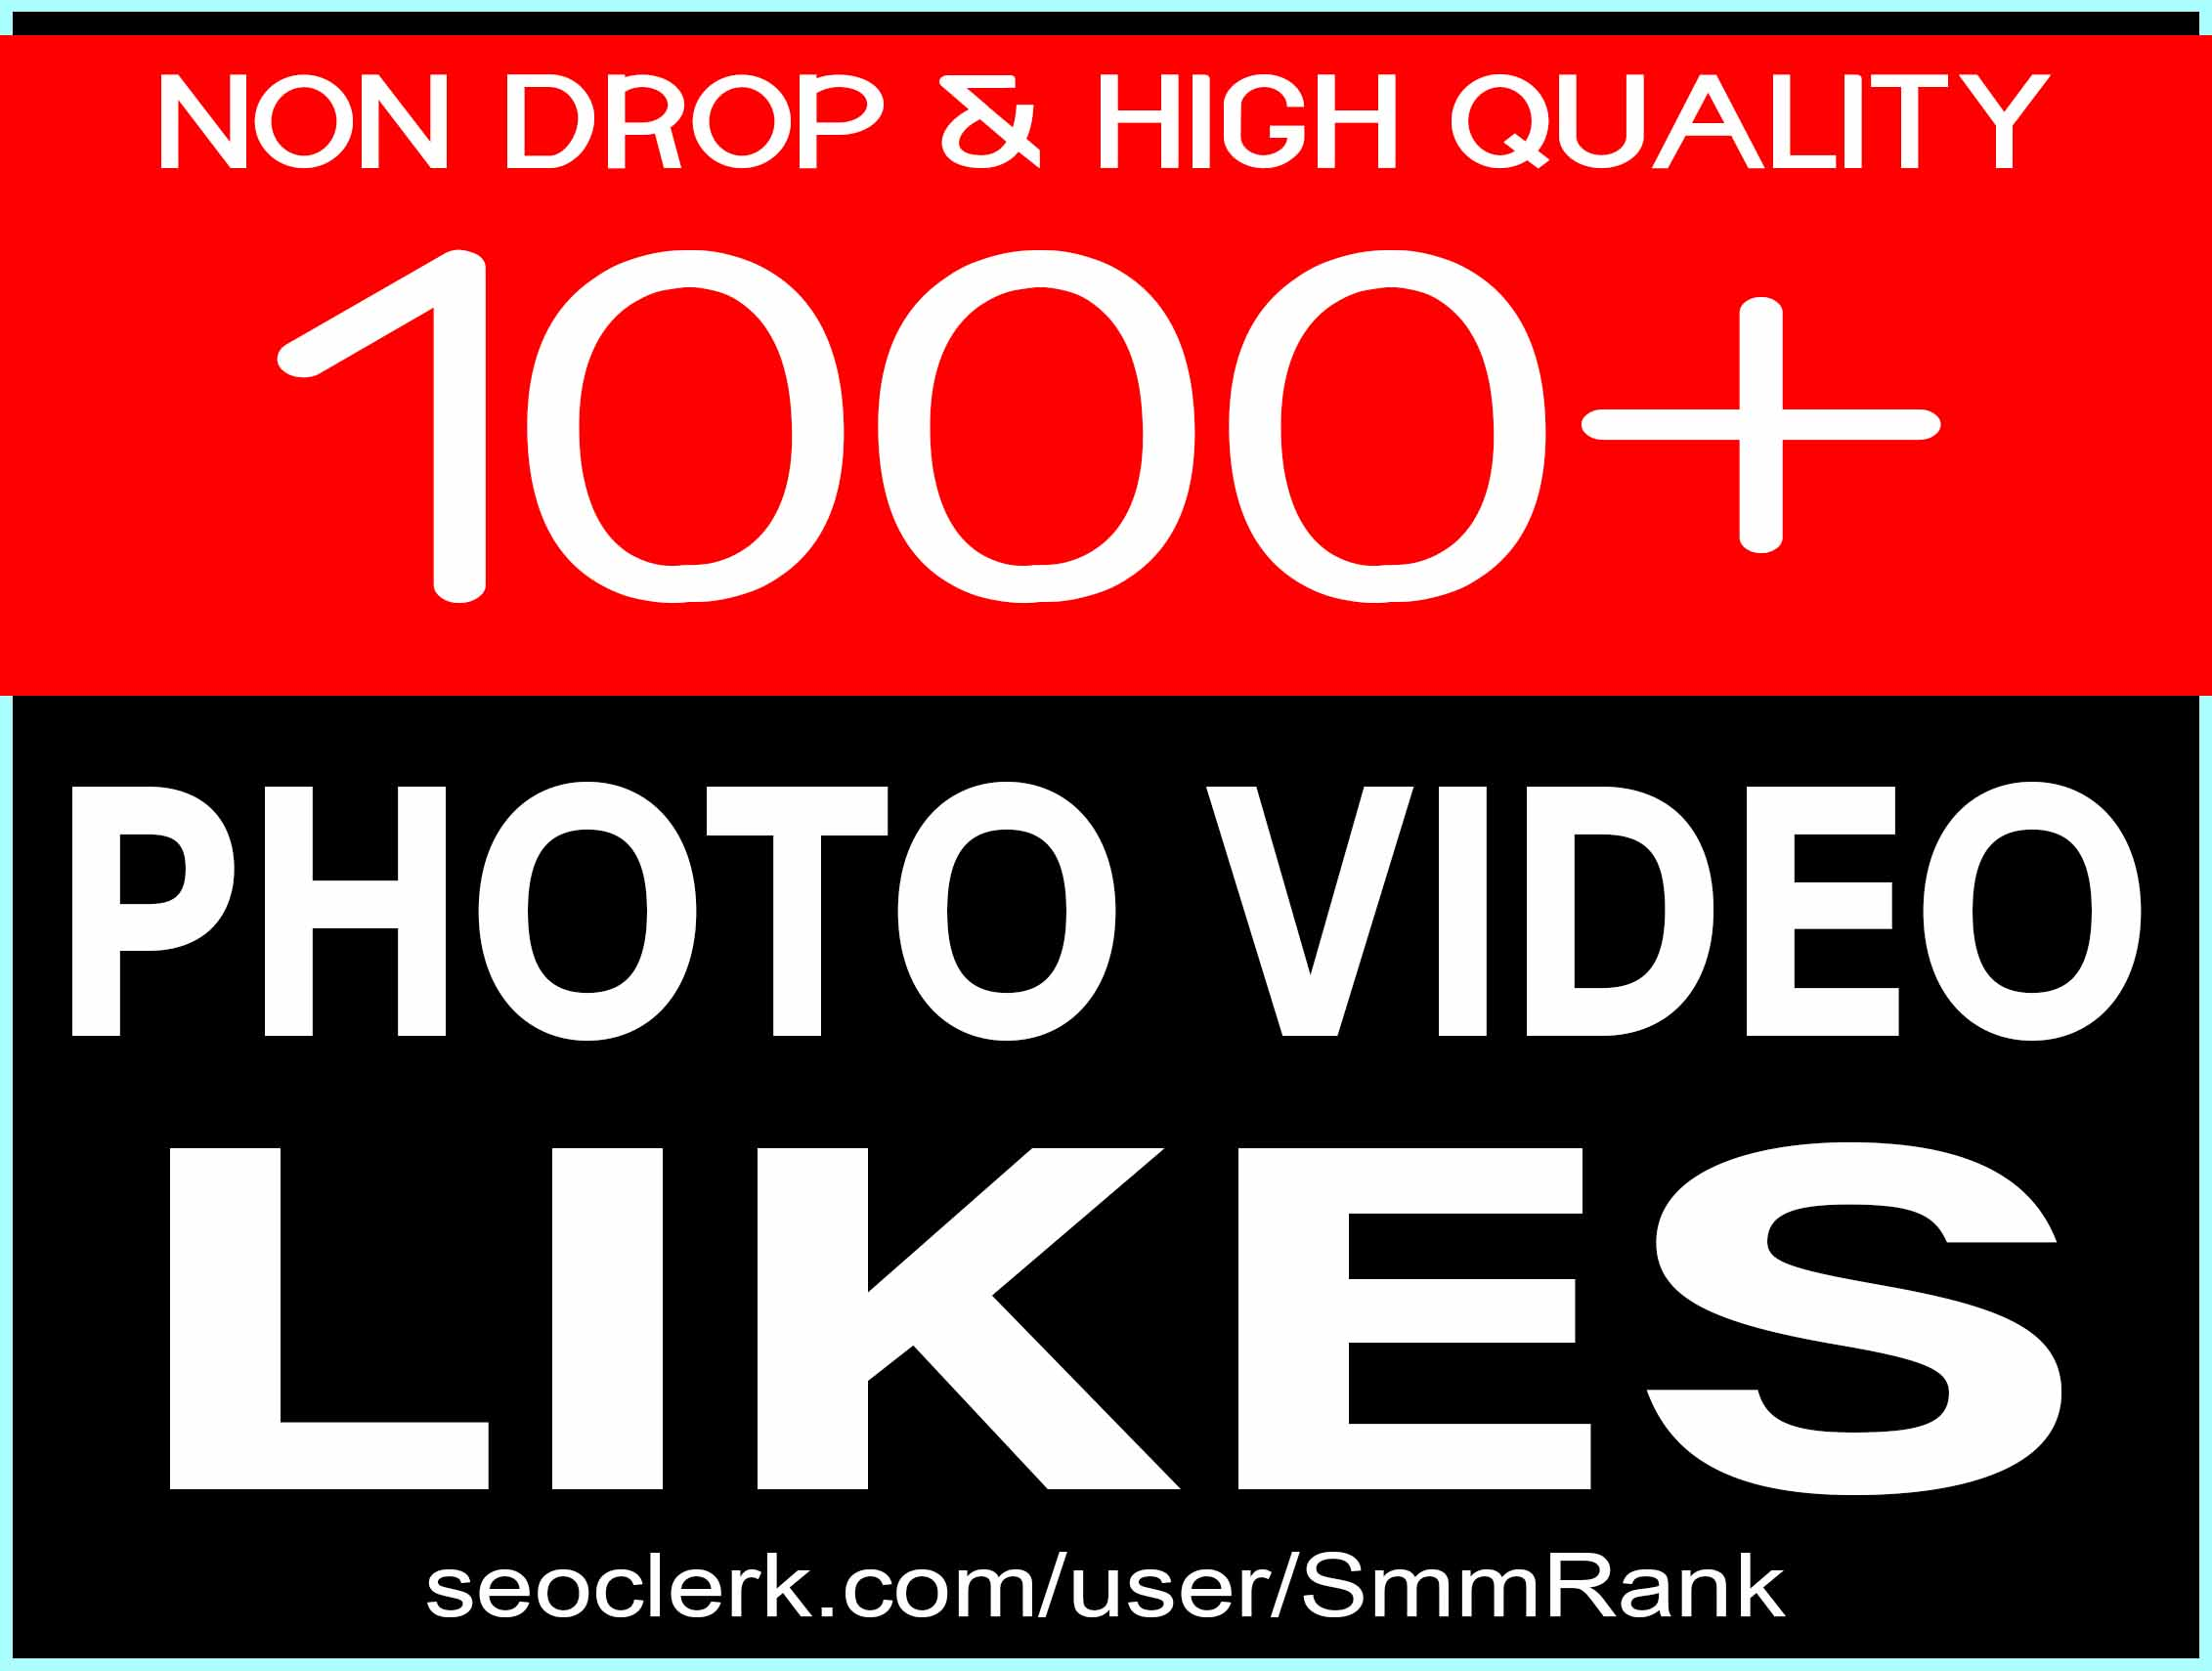 ADD 1000+ SOCIAL PICTURE OR VIDEO PROMOTION NON DROP AND SUPER FAST